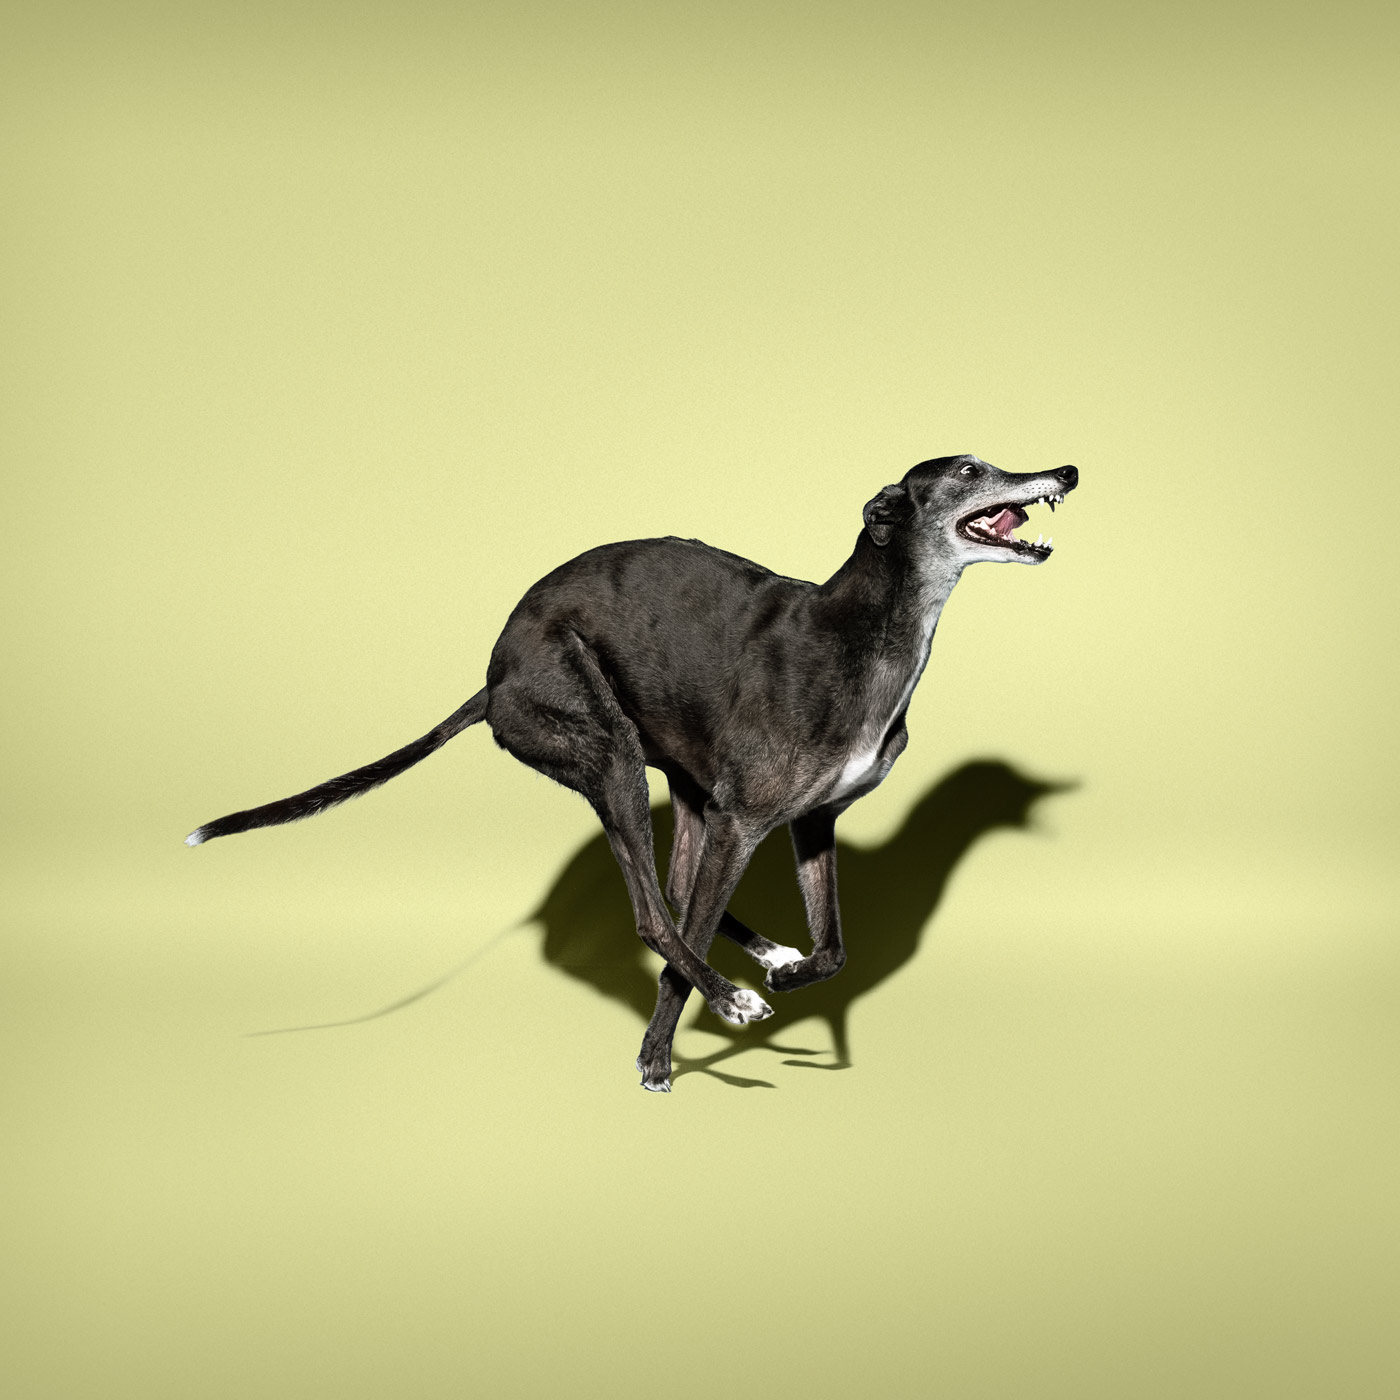 Commercial photographer Portland - greyhound dog on yellow grey background